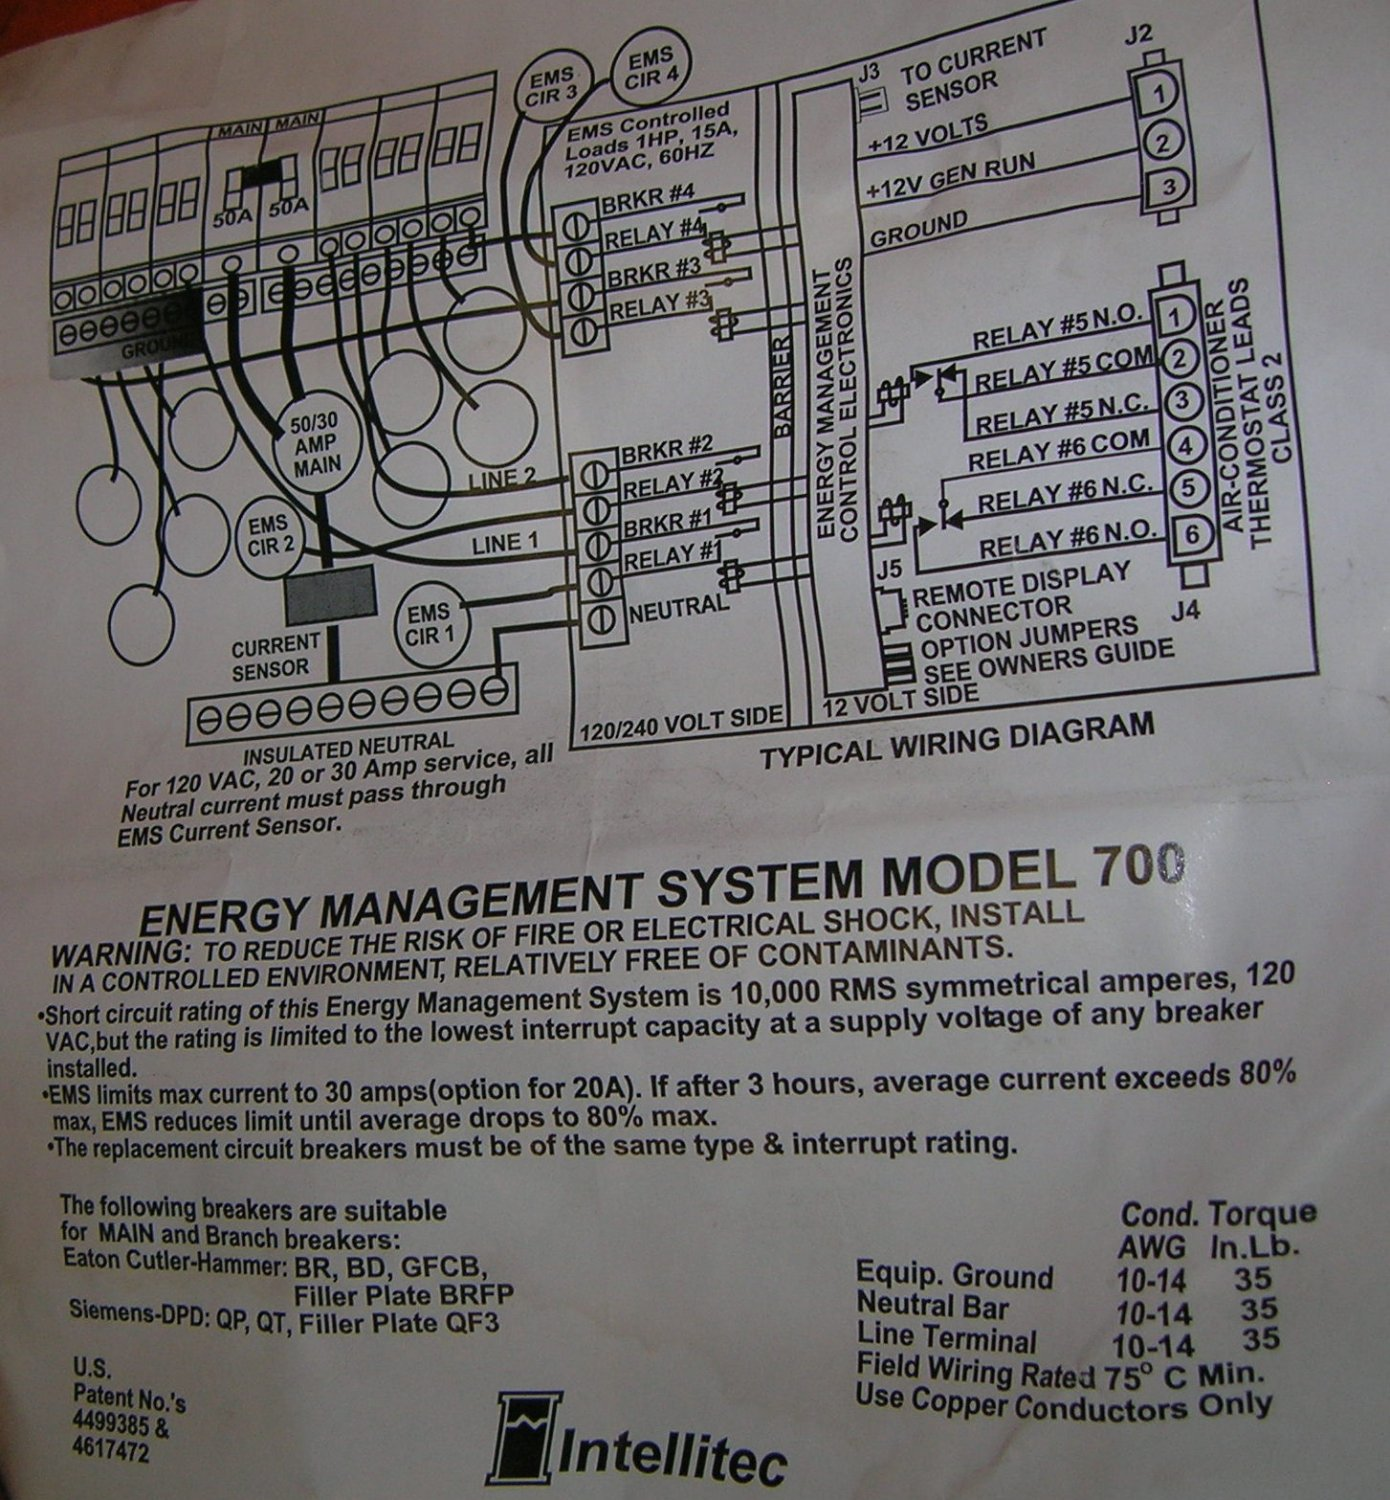 hight resolution of moreover battery switch wiring diagram on intellitec wiring diagram fleetwood rv battery diagram intellitec thermostat wiring